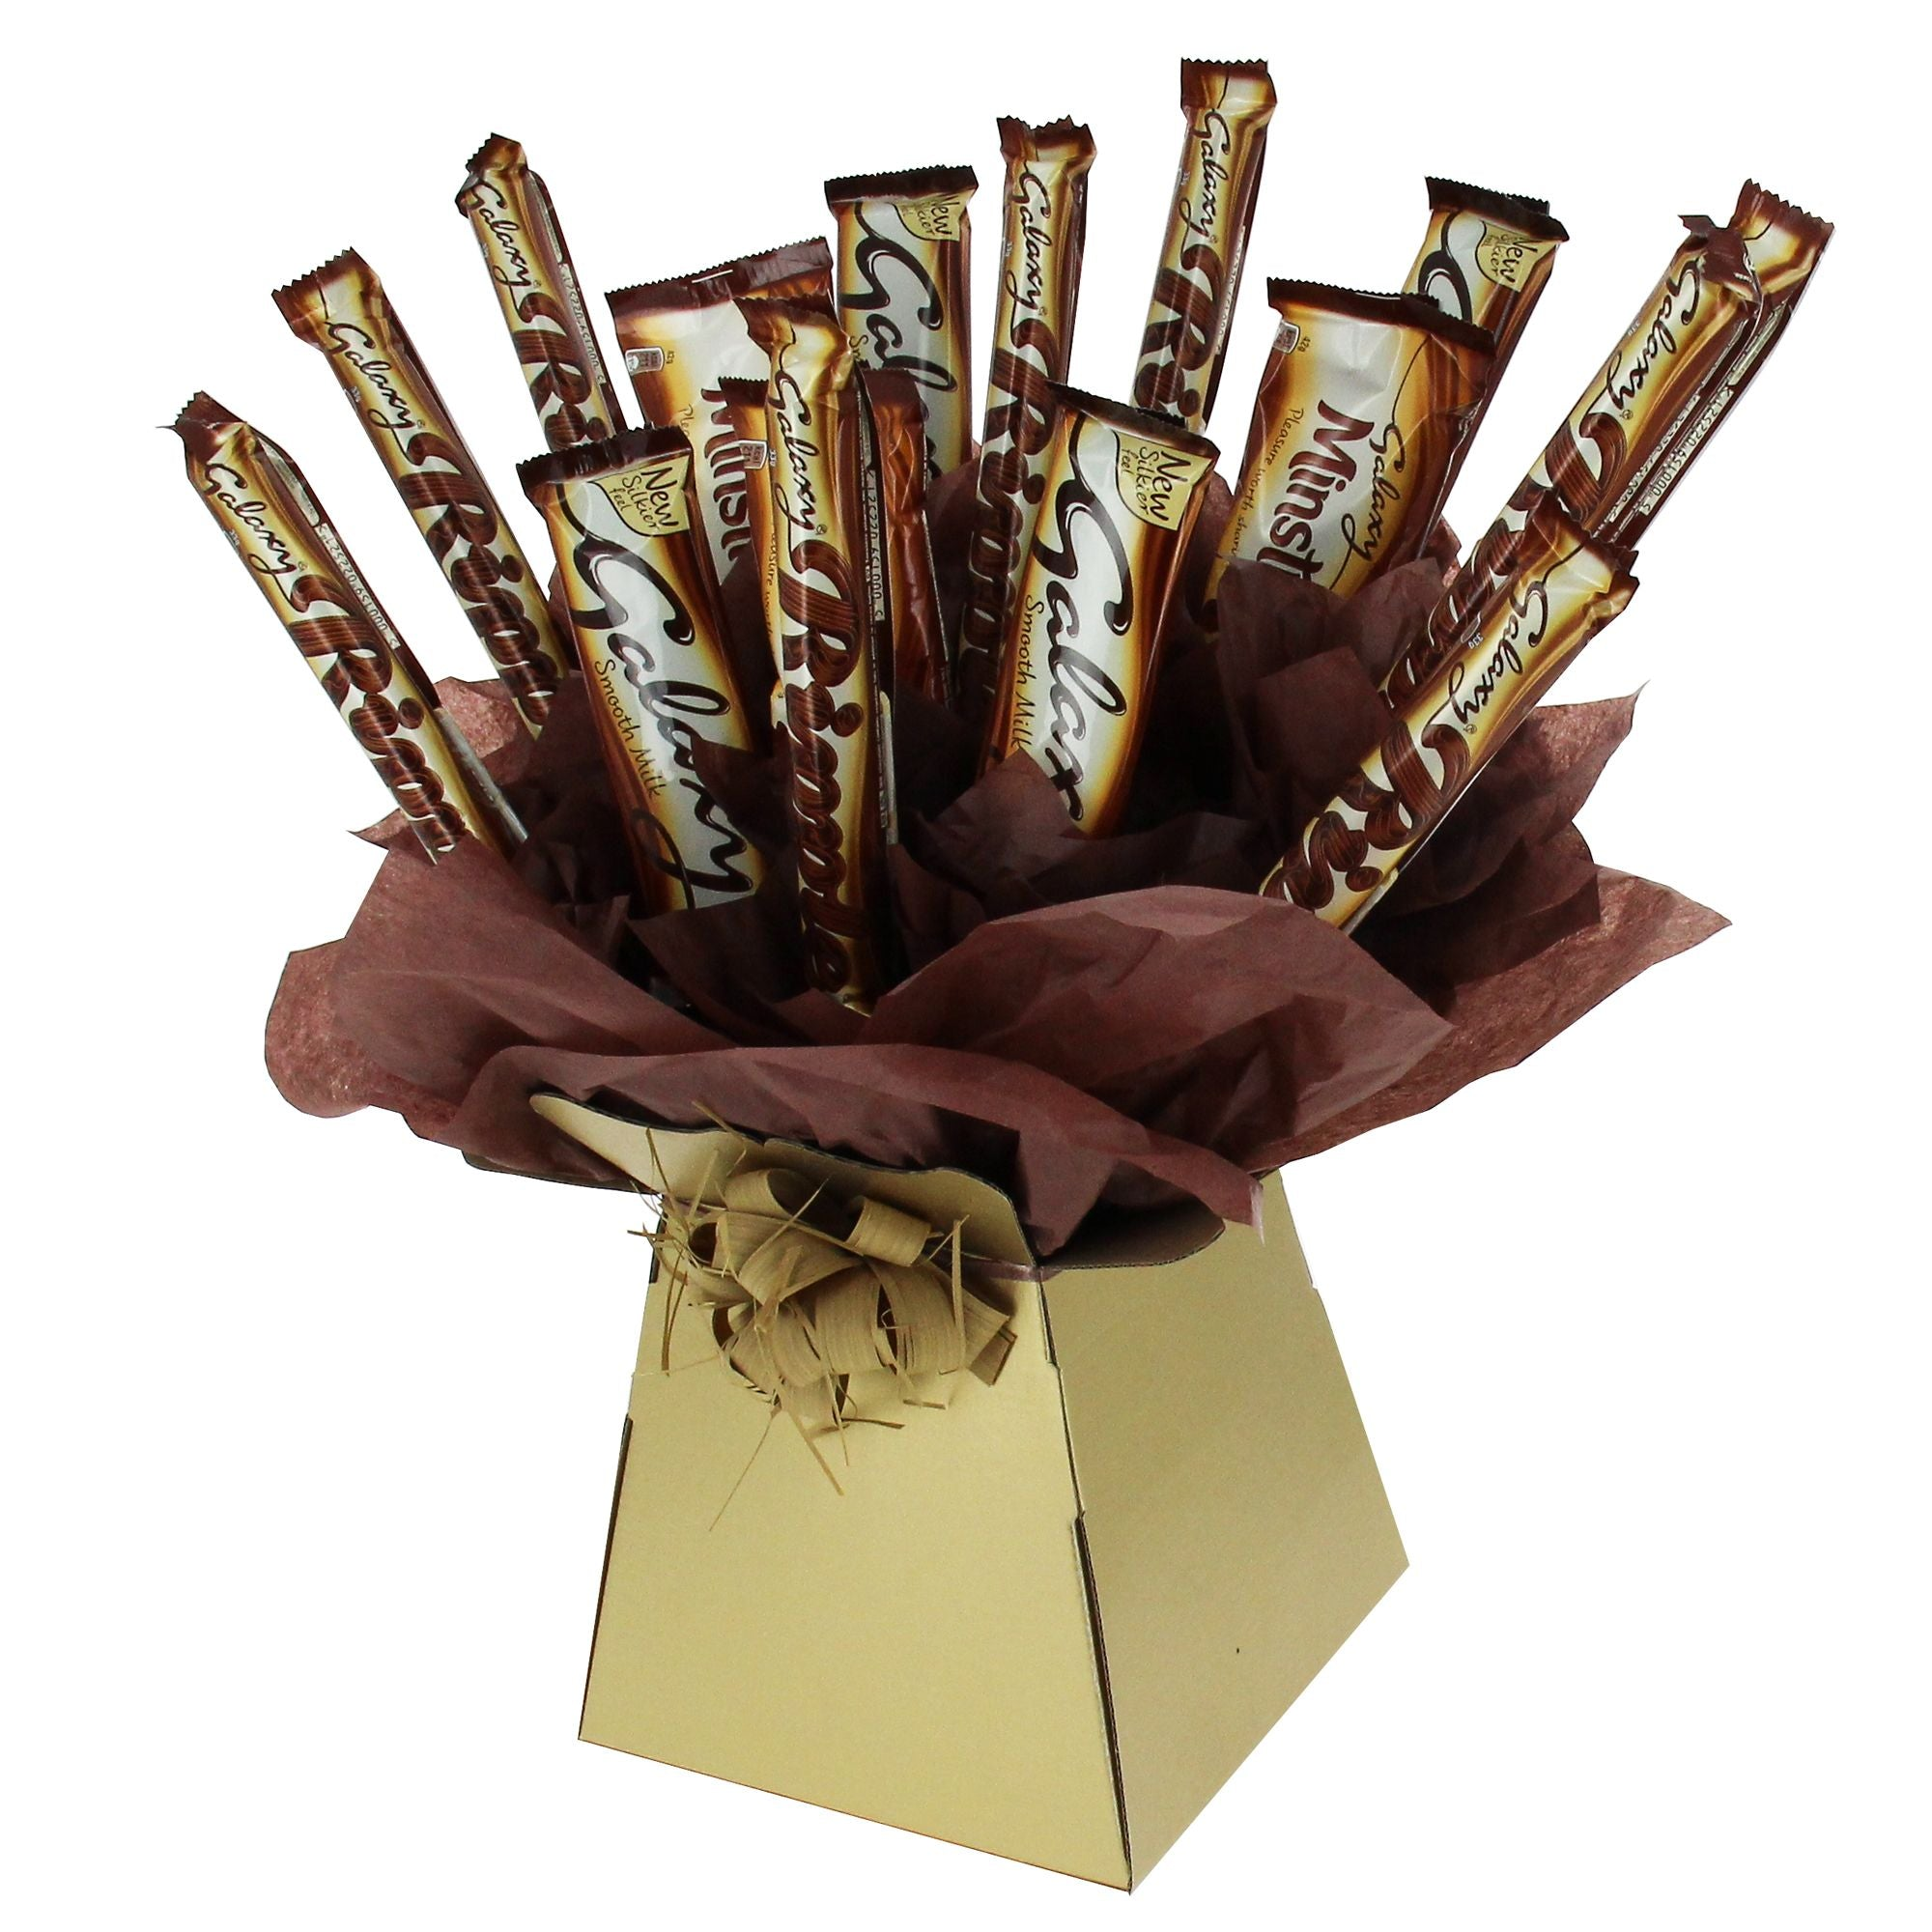 Galaxy chocolate chocolate bouquet by GDS - The Pop Up Deli